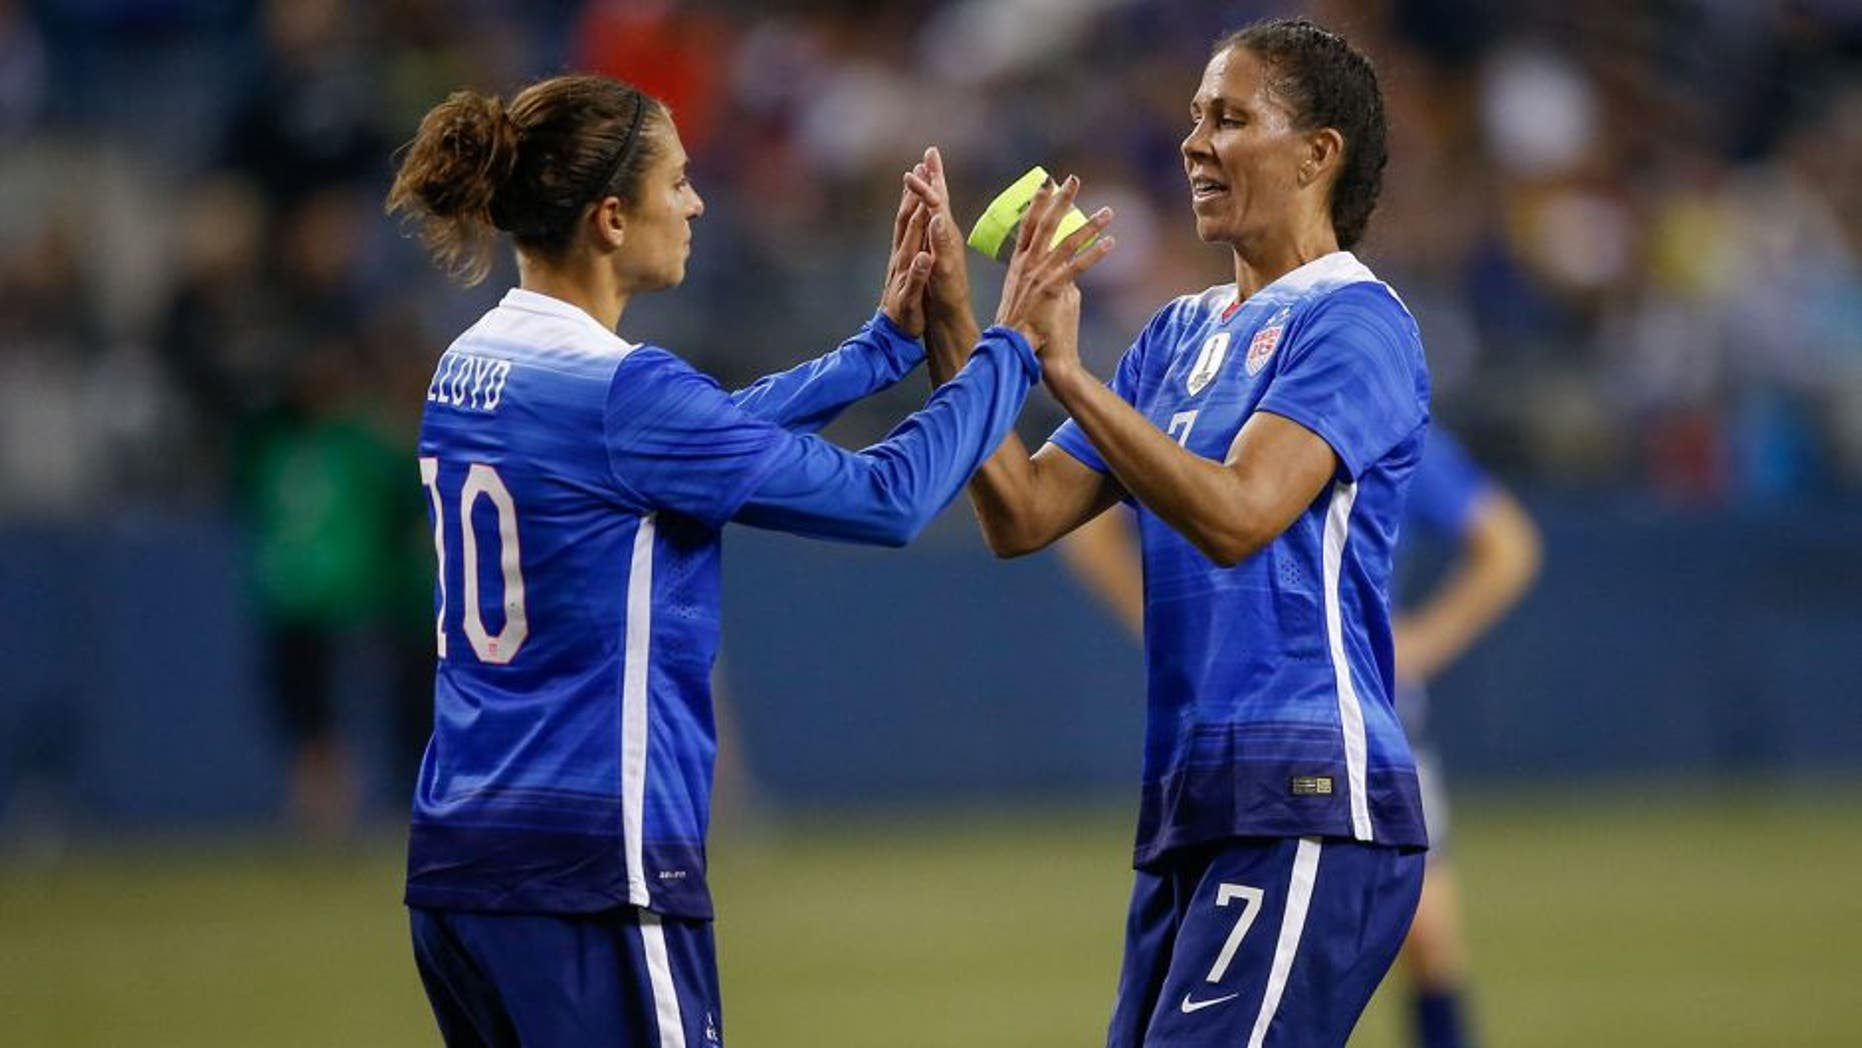 SEATTLE, WA - OCTOBER 21: Shannon Boxx #7 of the United States is congratulated by Carli Lloyd #10 as she is removed from the match in the first half against Brazil at CenturyLink Field on October 21, 2015 in Seattle, Washington. (Photo by Otto Greule Jr/Getty Images)